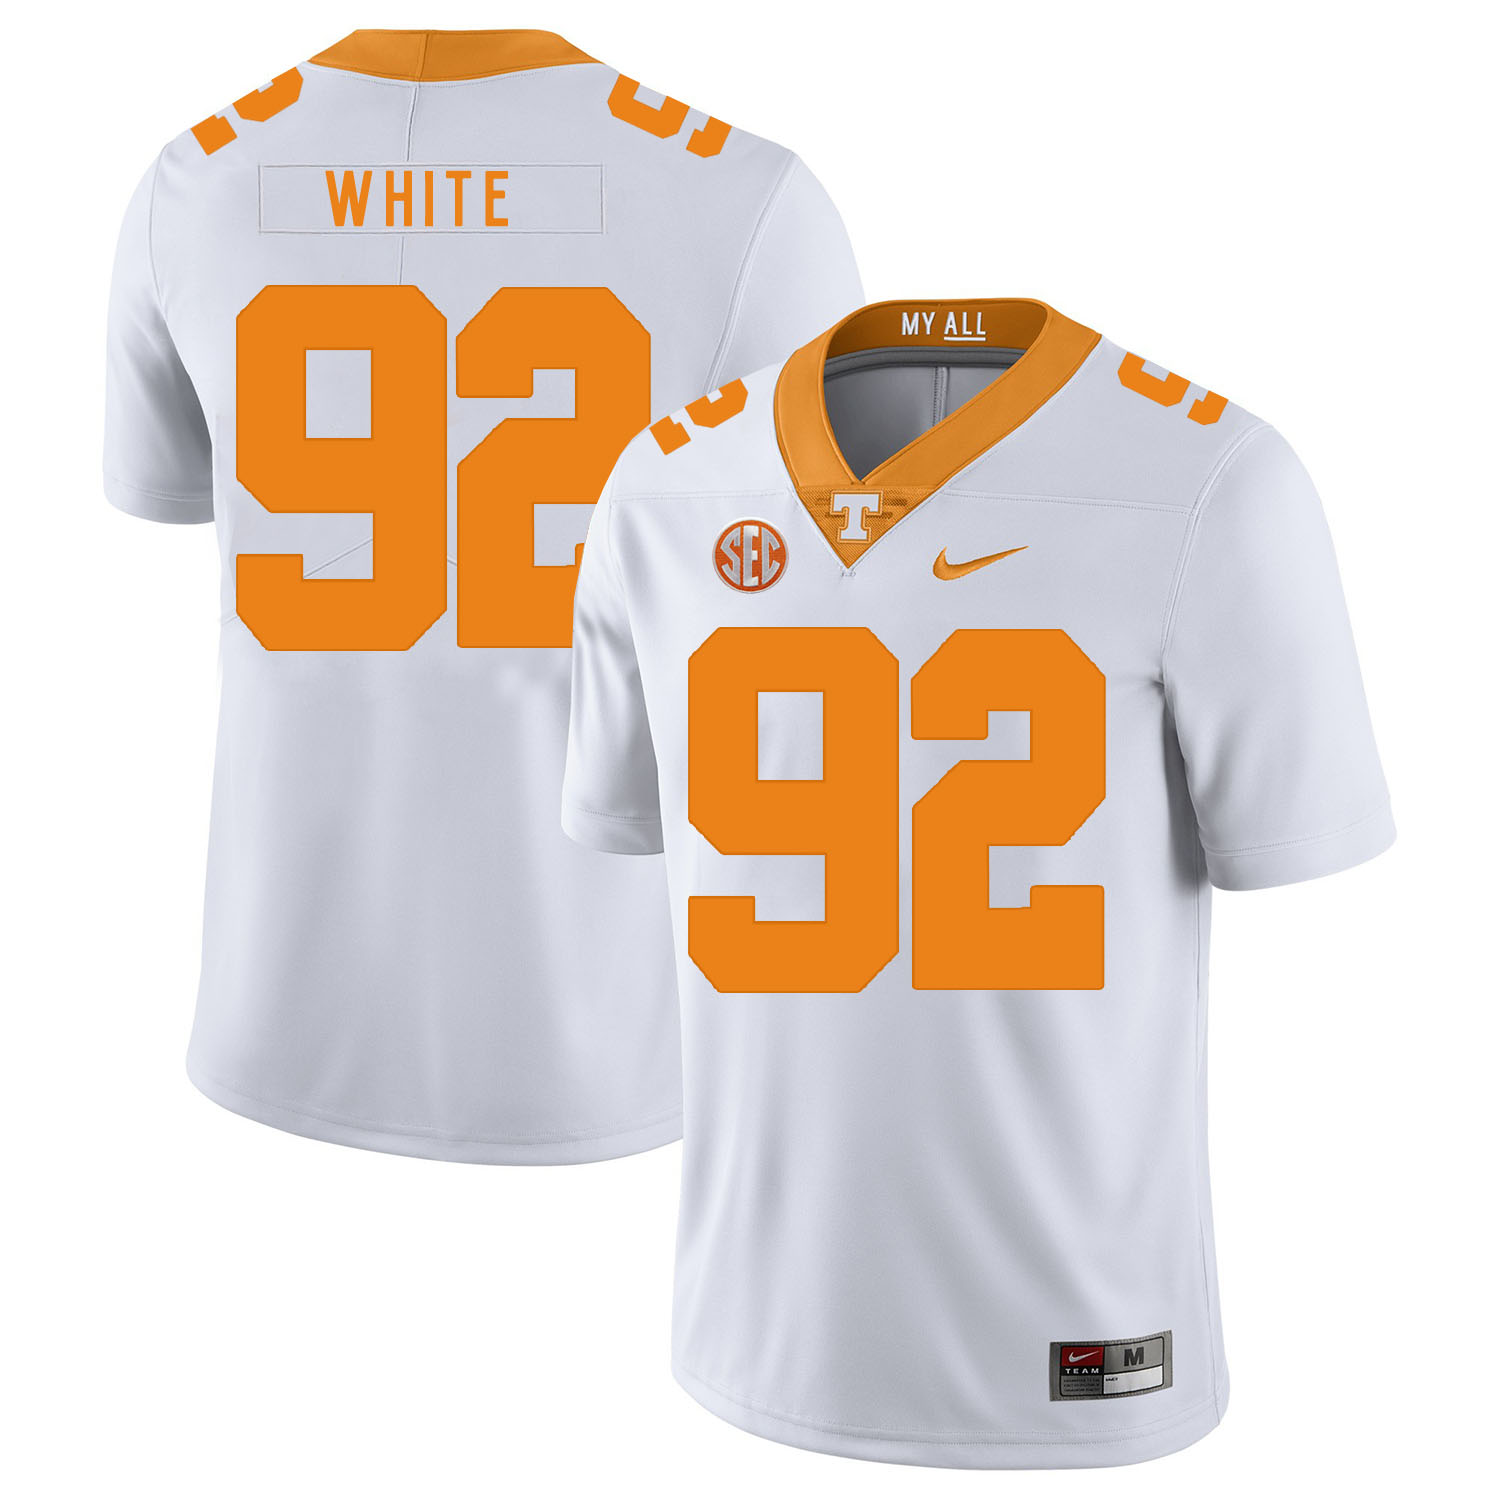 Tennessee Volunteers 92 Reggie White White Nike College Football Jersey